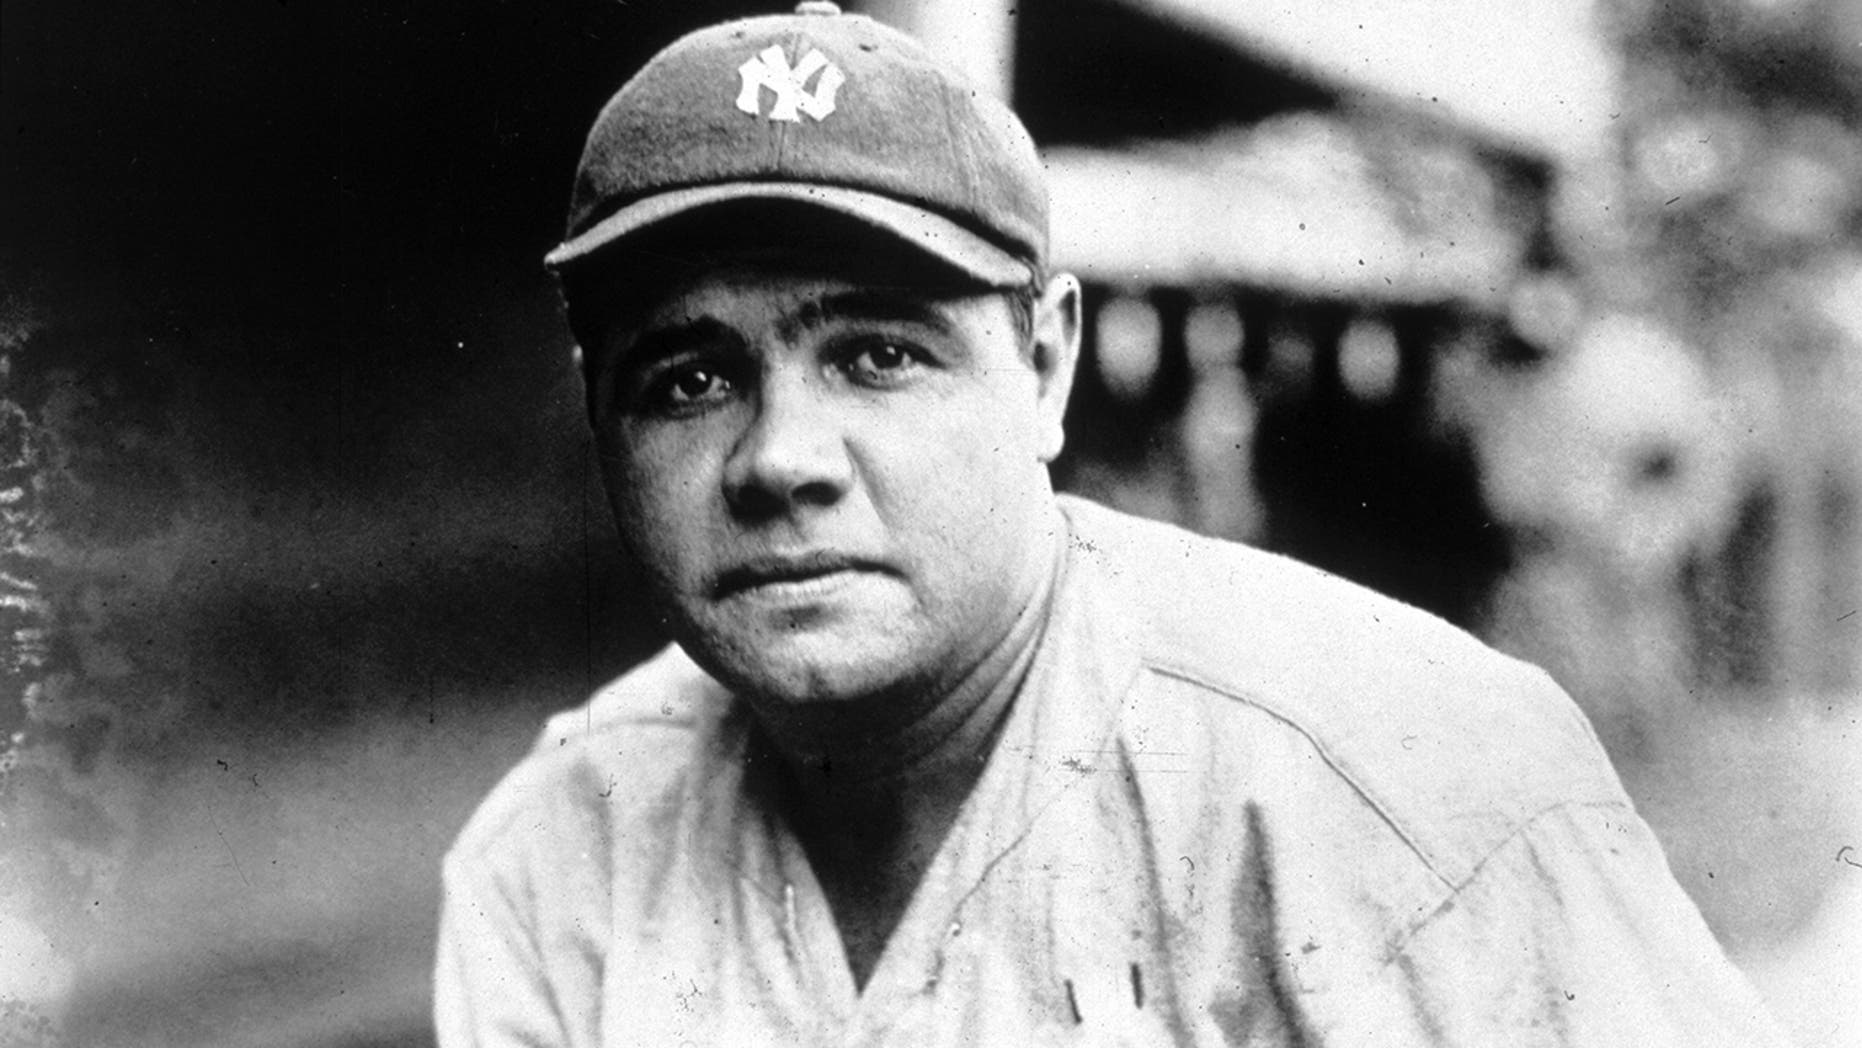 Westlake Legal Group babe-ruth This Day in History: Aug. 16 fox-news/us/this-day-in-history fox news fnc/us fnc bf7fb4a1-48f2-53d1-a9f6-a0f7157bde4a article